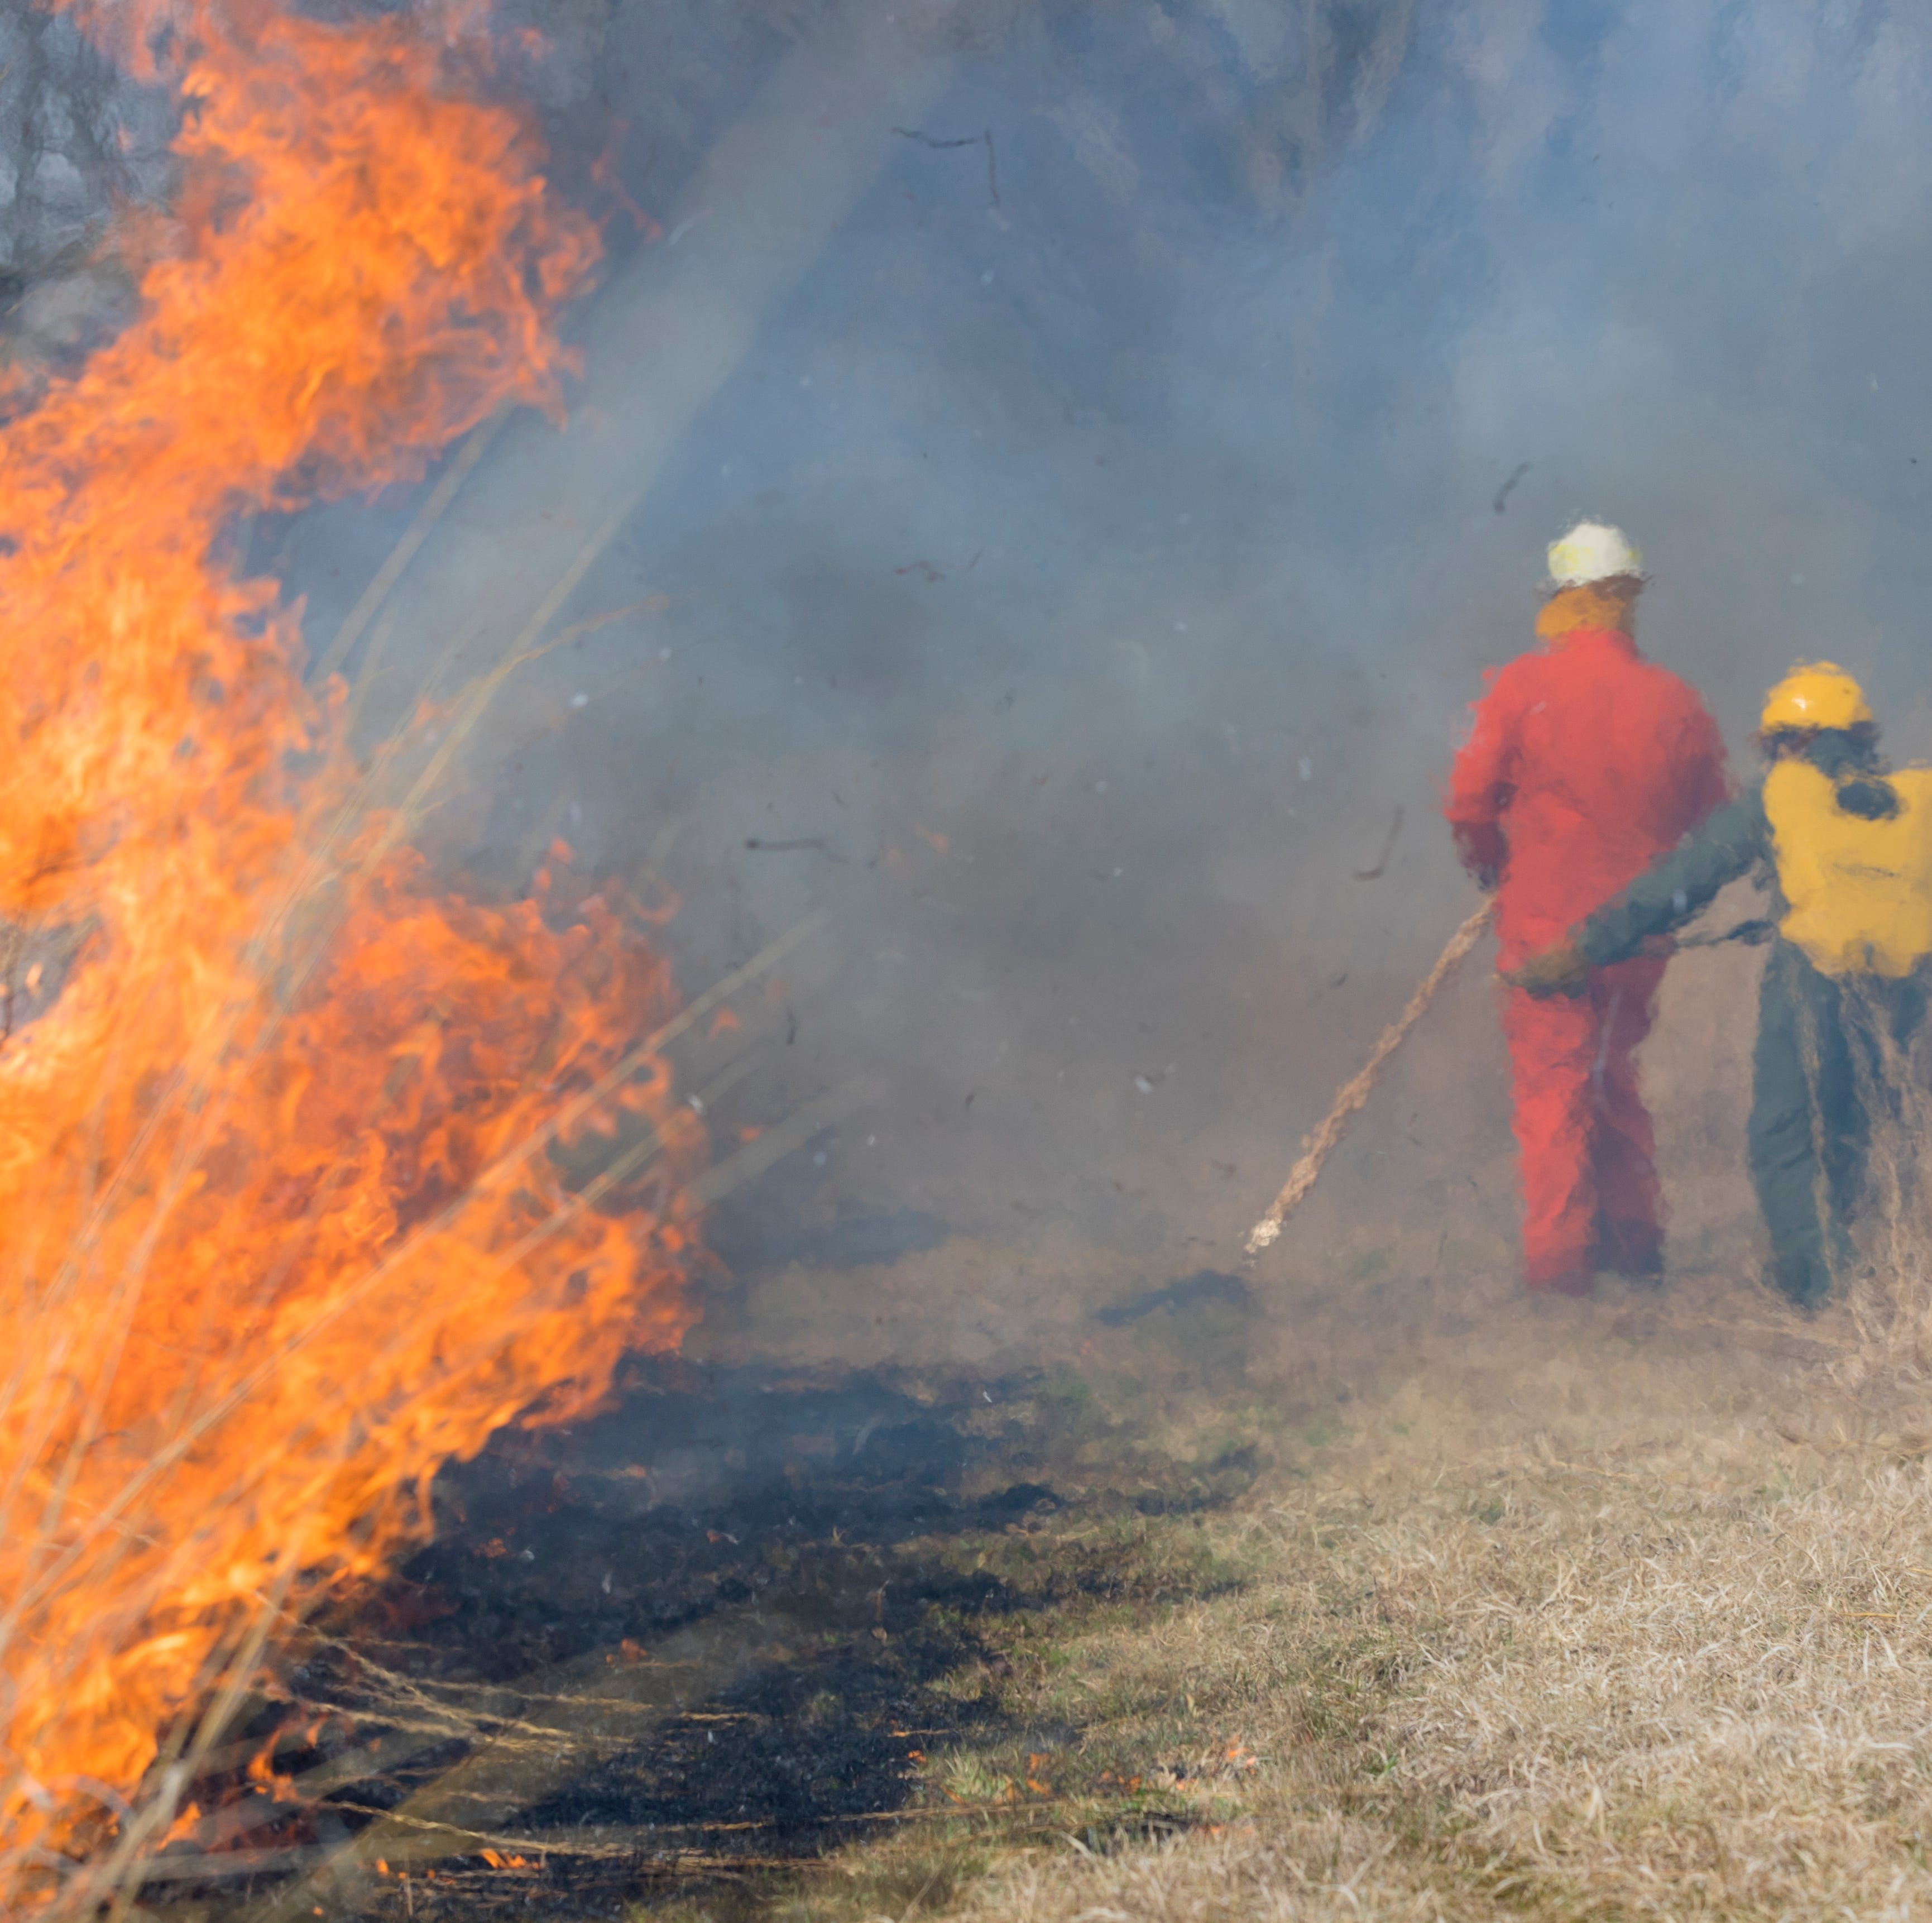 Controlled burn at Ball State University helps environment and educates students